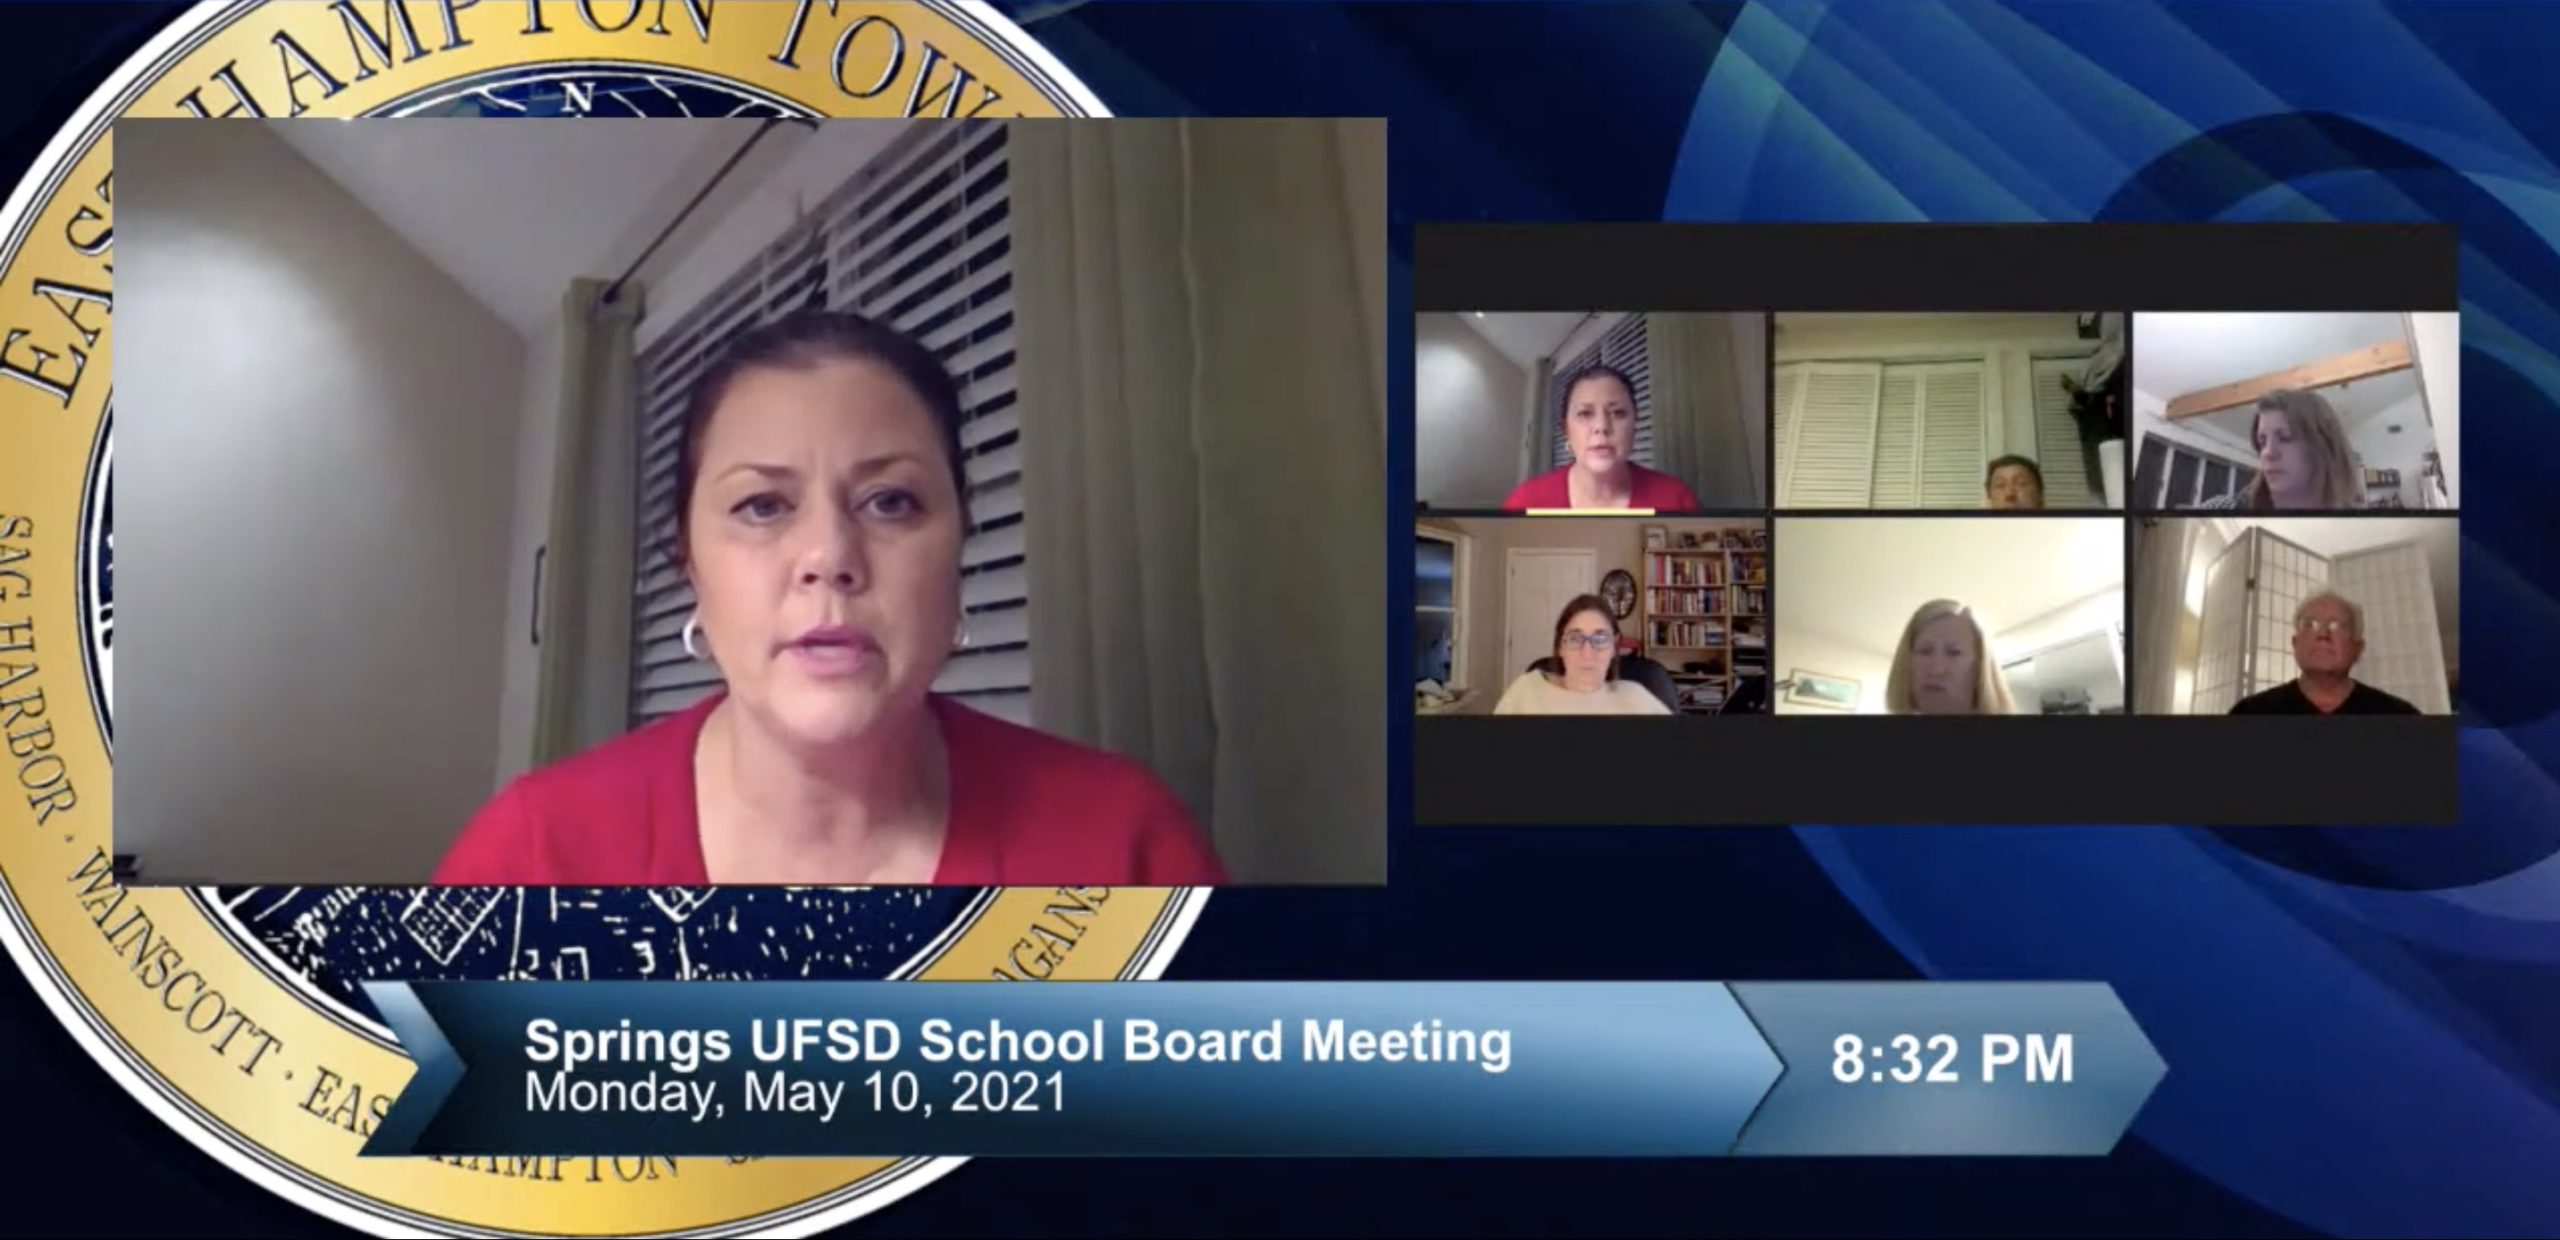 Springs School Principal Christine Cleary unveils two different school day scheduling options for the 2021-22 school year during the May 10 board of education meeting.